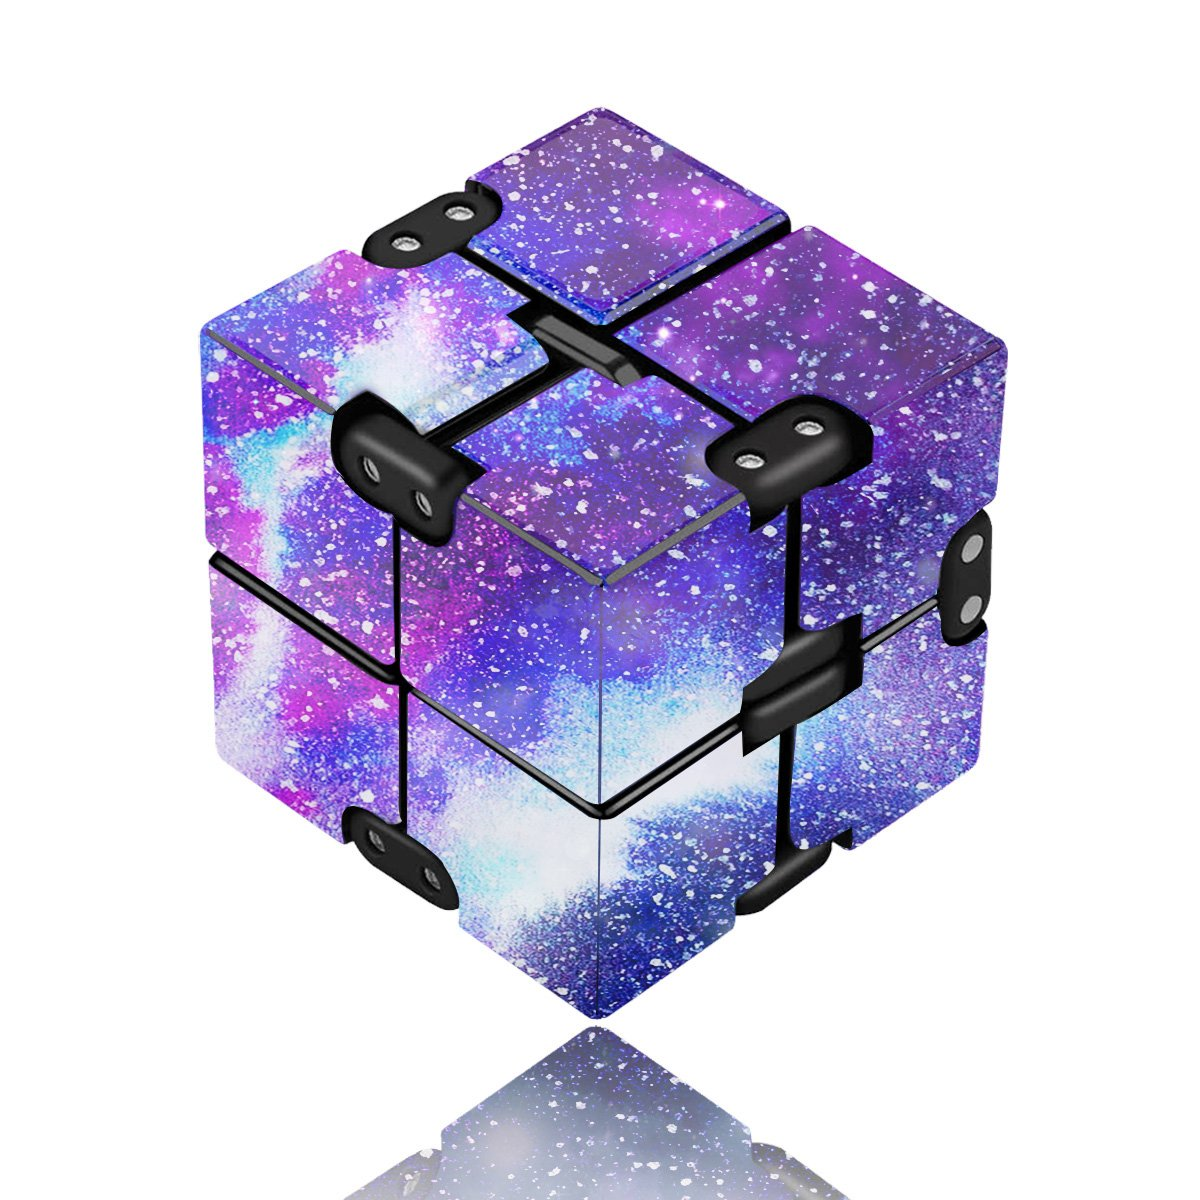 Yomiie Infinity Cube Fidget Toy for Adults and Kids, Fidget Finger Toy Stress and Anxiety Relief, Killing Time Unique Idea Cool Mini Gadget for ADD/ADHD/OCD